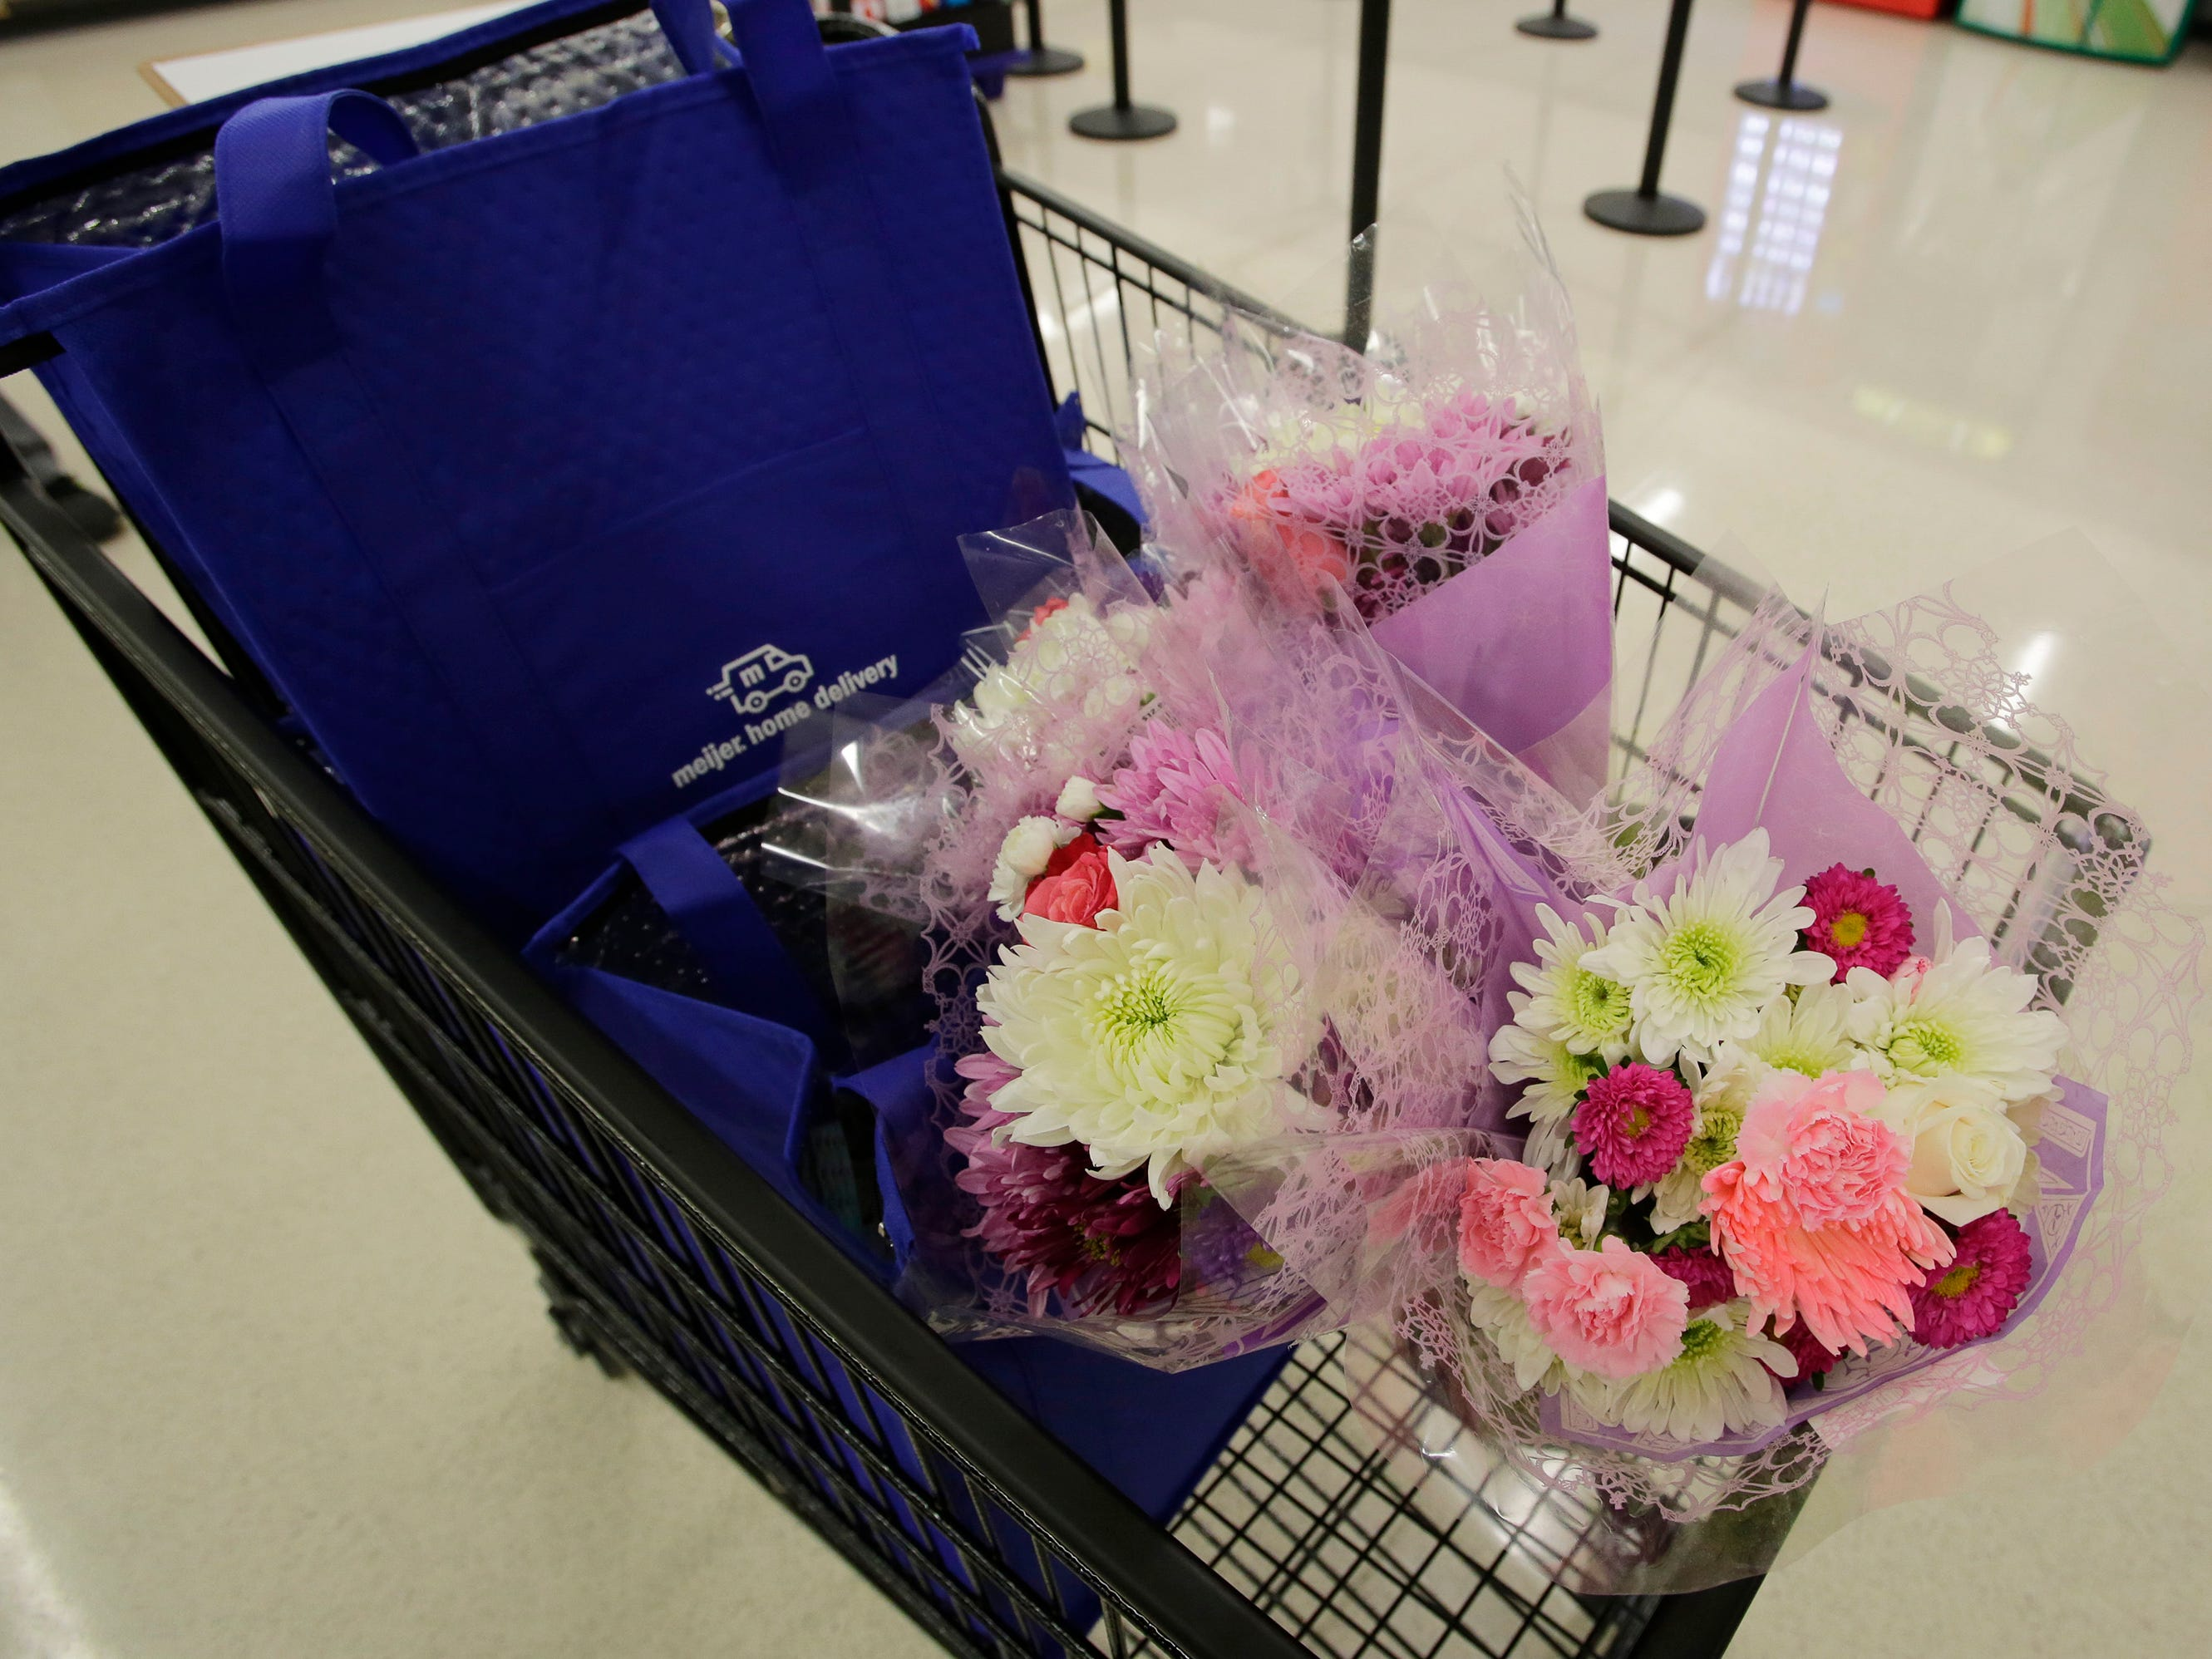 Gifts that were distributed to random mothers at Meijer, Saturday, May 11, 2019, in Sheboygan, Wis.